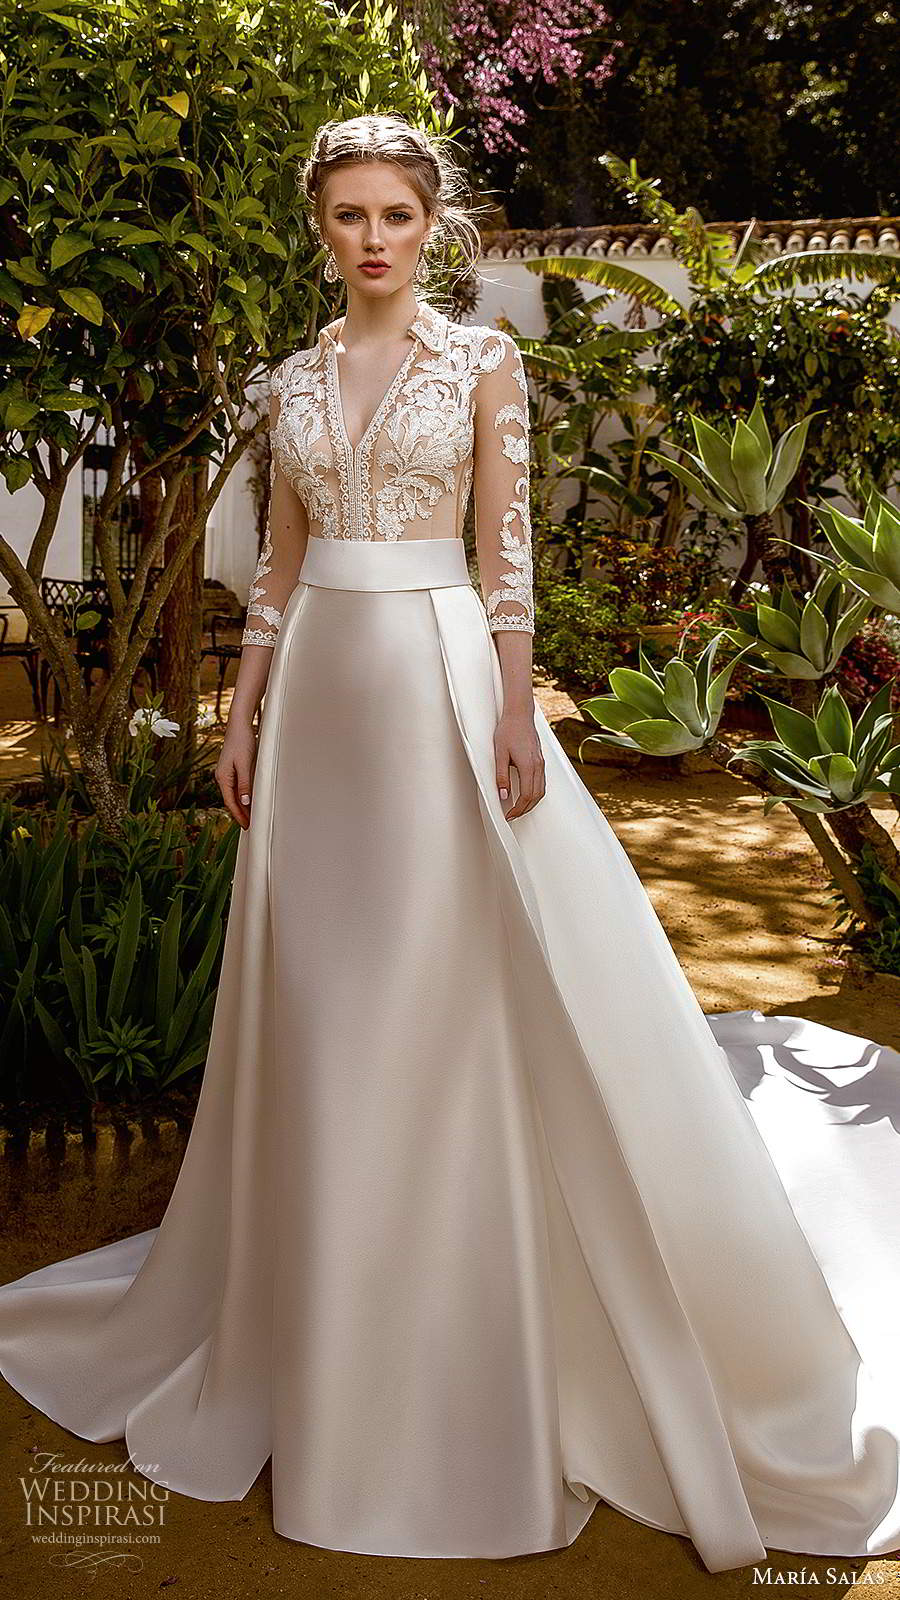 maria salas 2019 bridal illusion 3 quarter sleeves collar v neckline sheer embellished bodice a line ball gown wedding dress clean skirt chapel train (2) mv